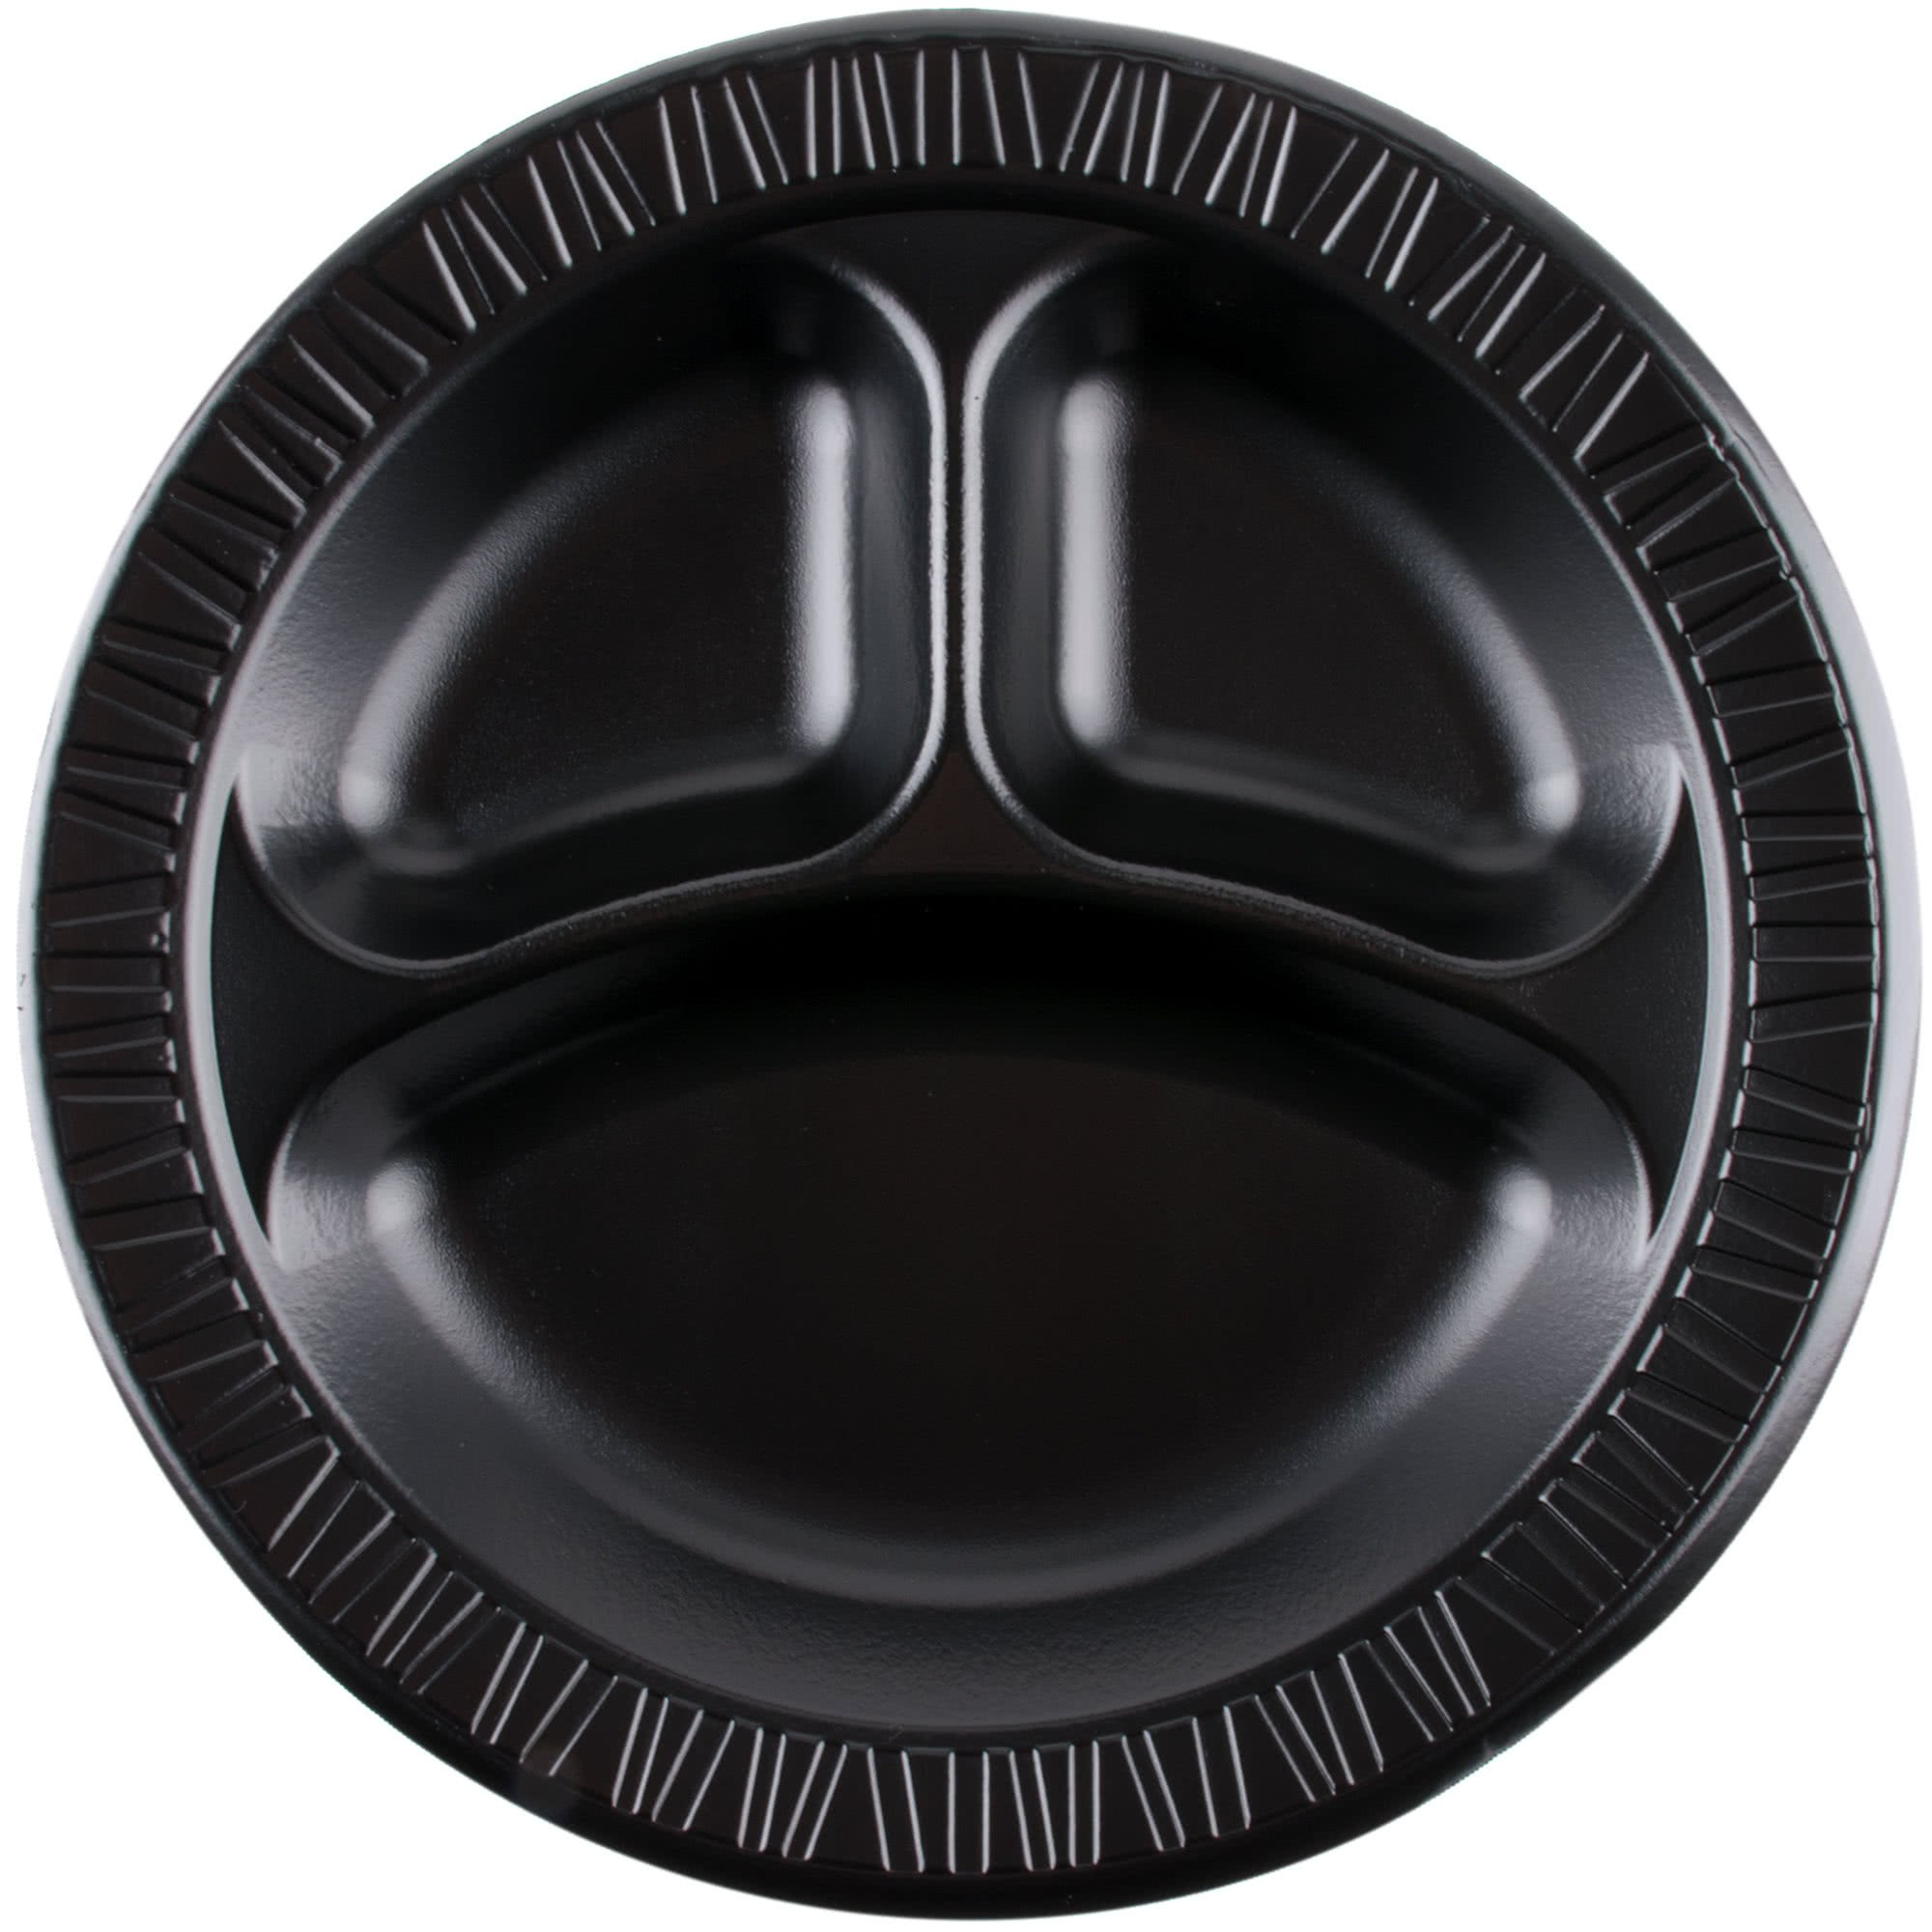 TableTop King 10CPBQR Quiet Classic 10 1/4'' 3 Compartment Black Laminated Round Foam Plate - 500/Case by TableTop King